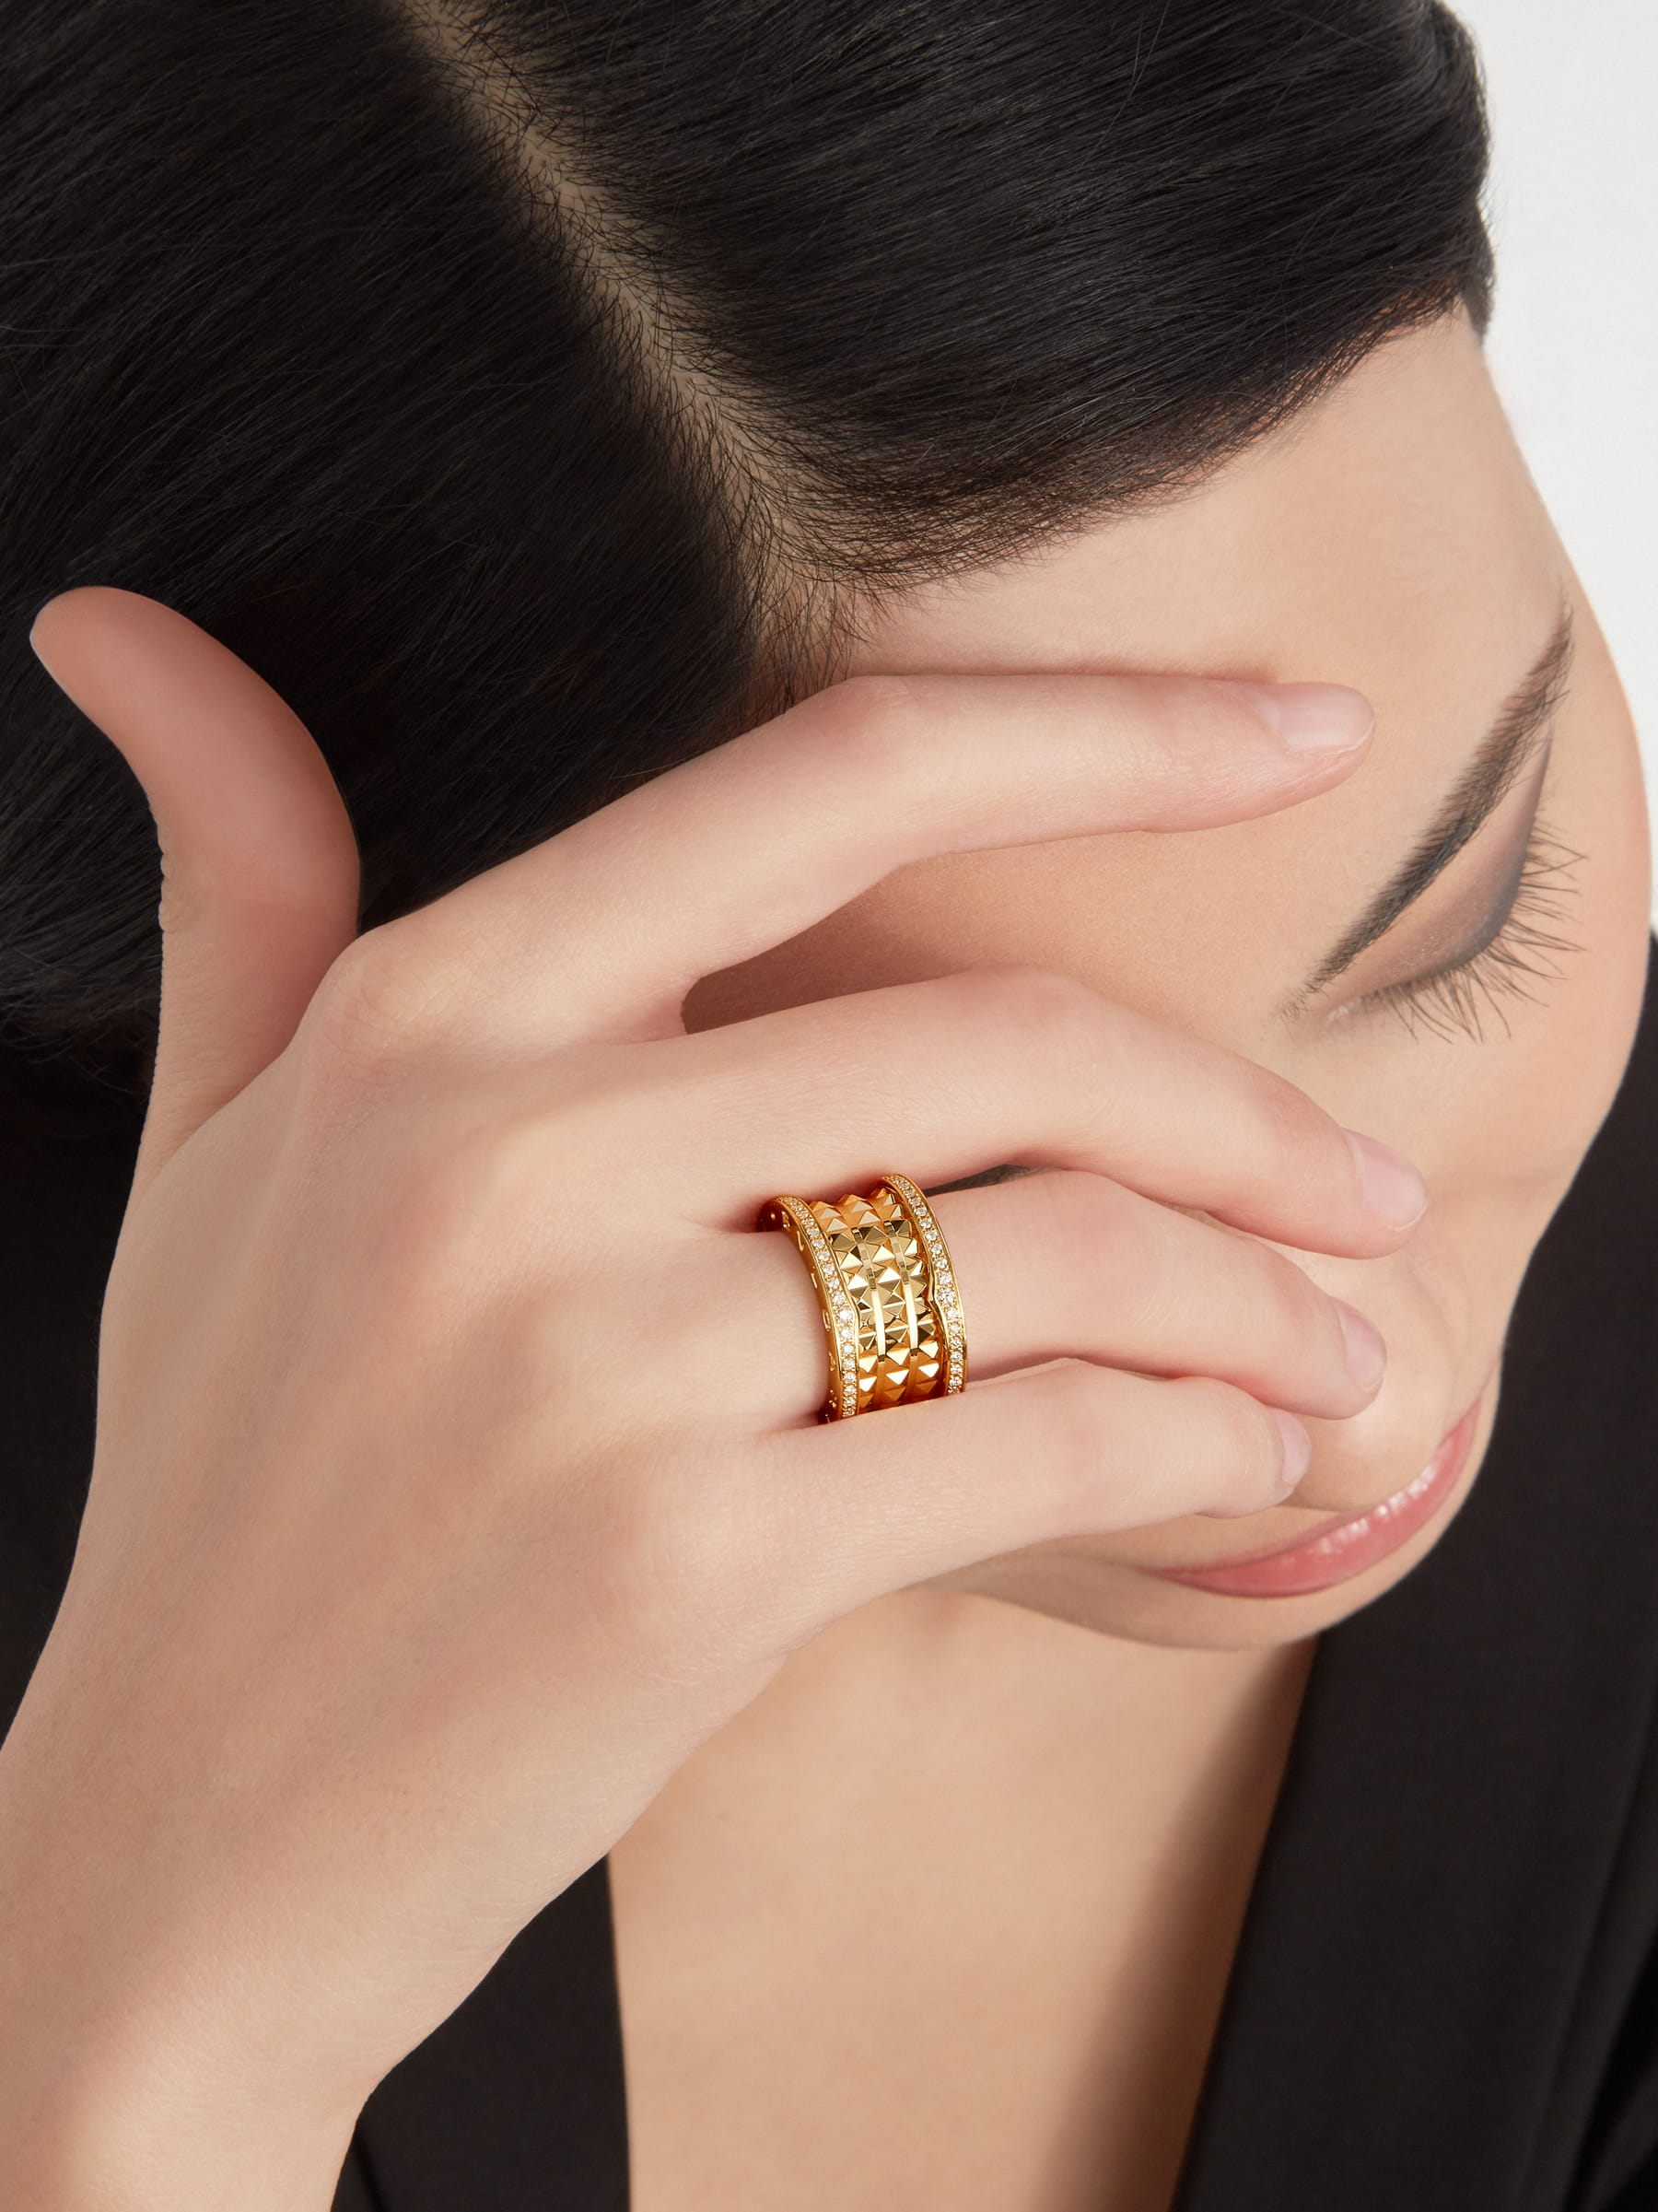 B.zero1 Rock four-band ring in 18 kt yellow gold with studded spiral and pavé diamonds on the edges. AN859026 image 2